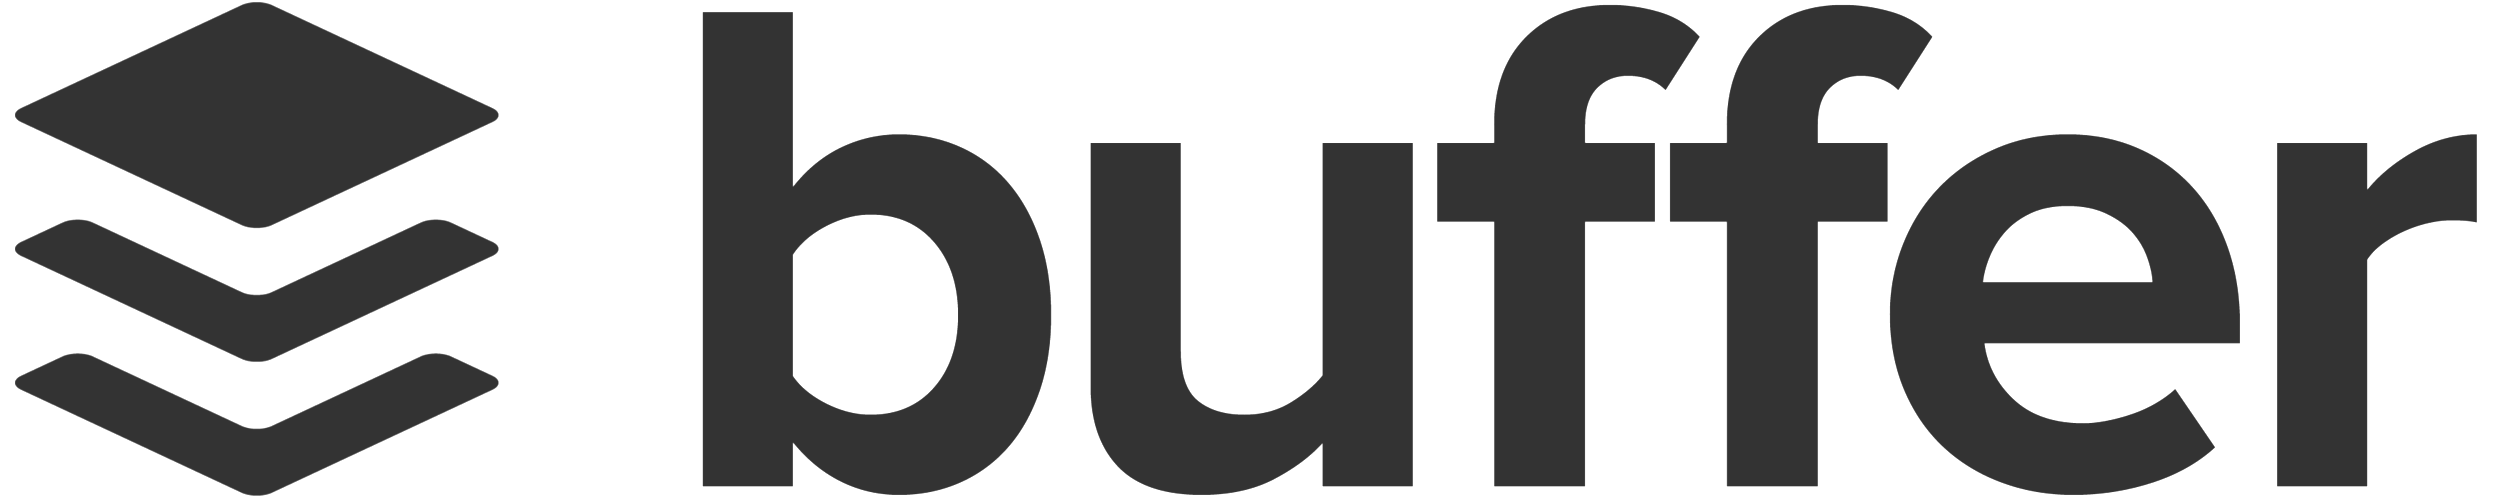 buffer-logo-dark.png